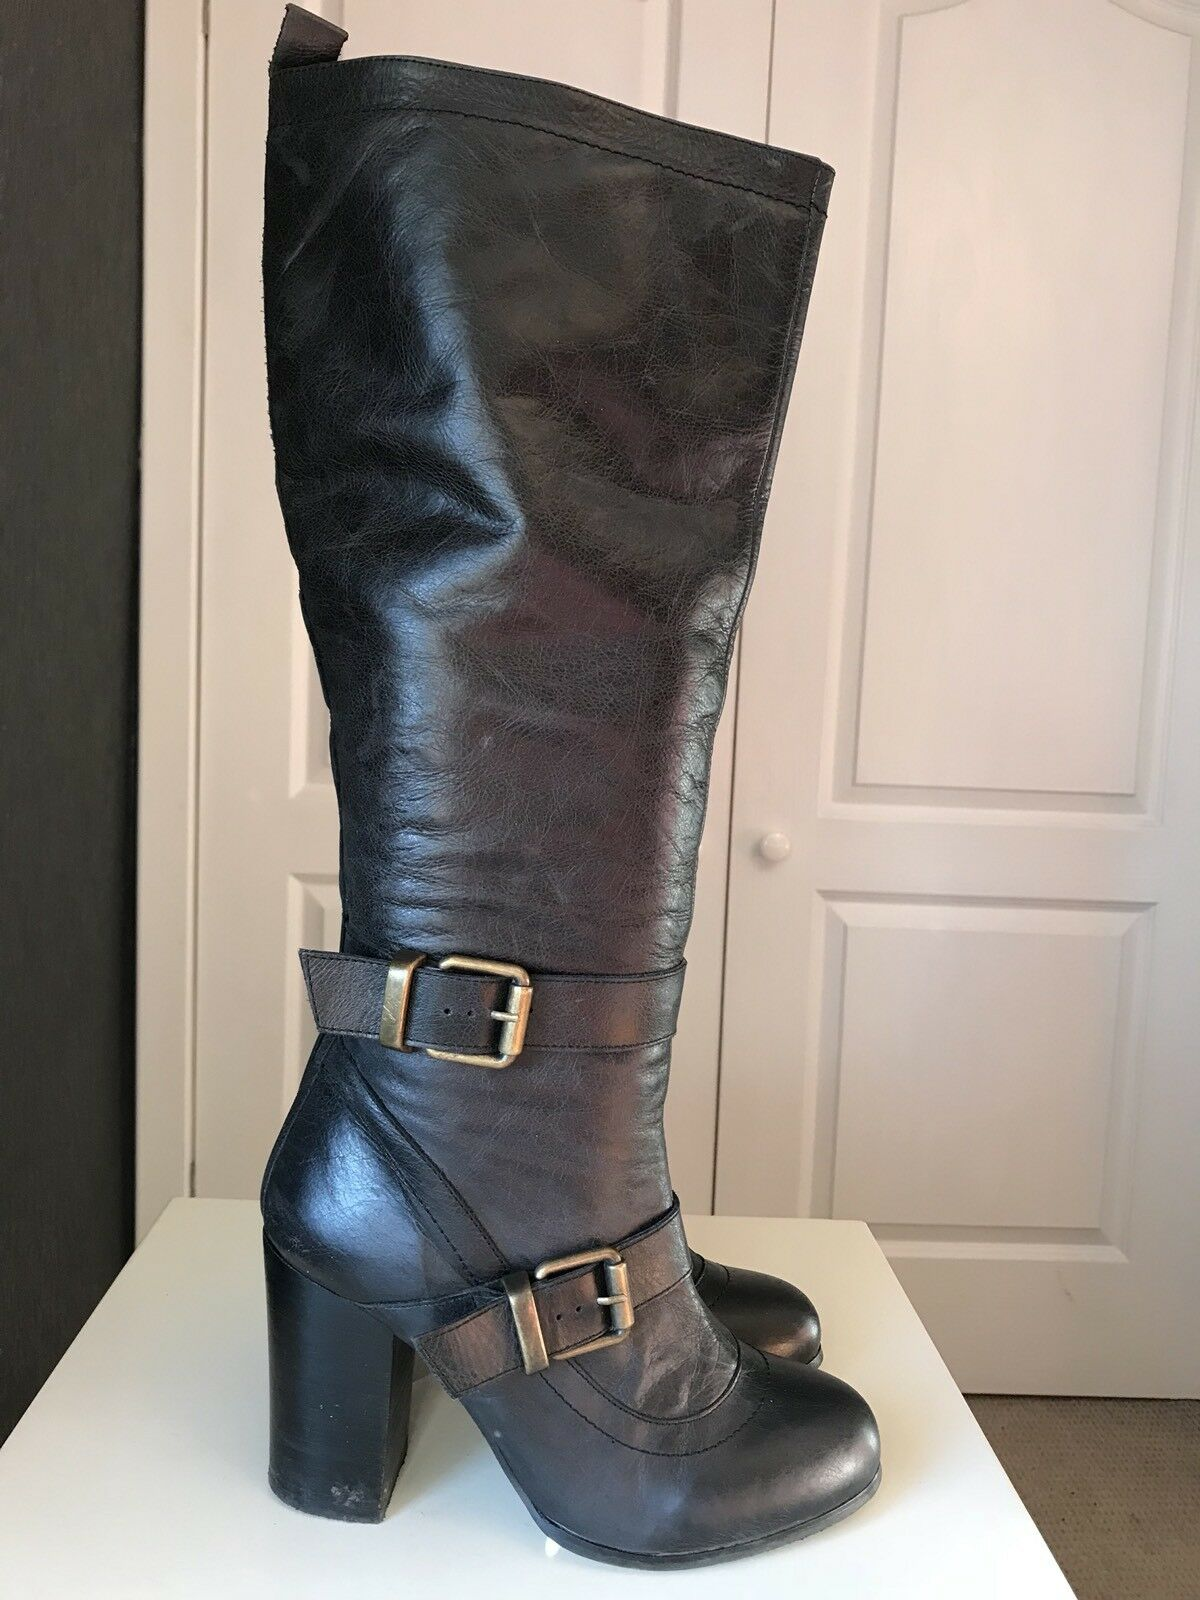 SCHUH Designer Designer Designer Ladies Women Black Leather Knee High Heel shoes Boot Size 6 39 bb3818